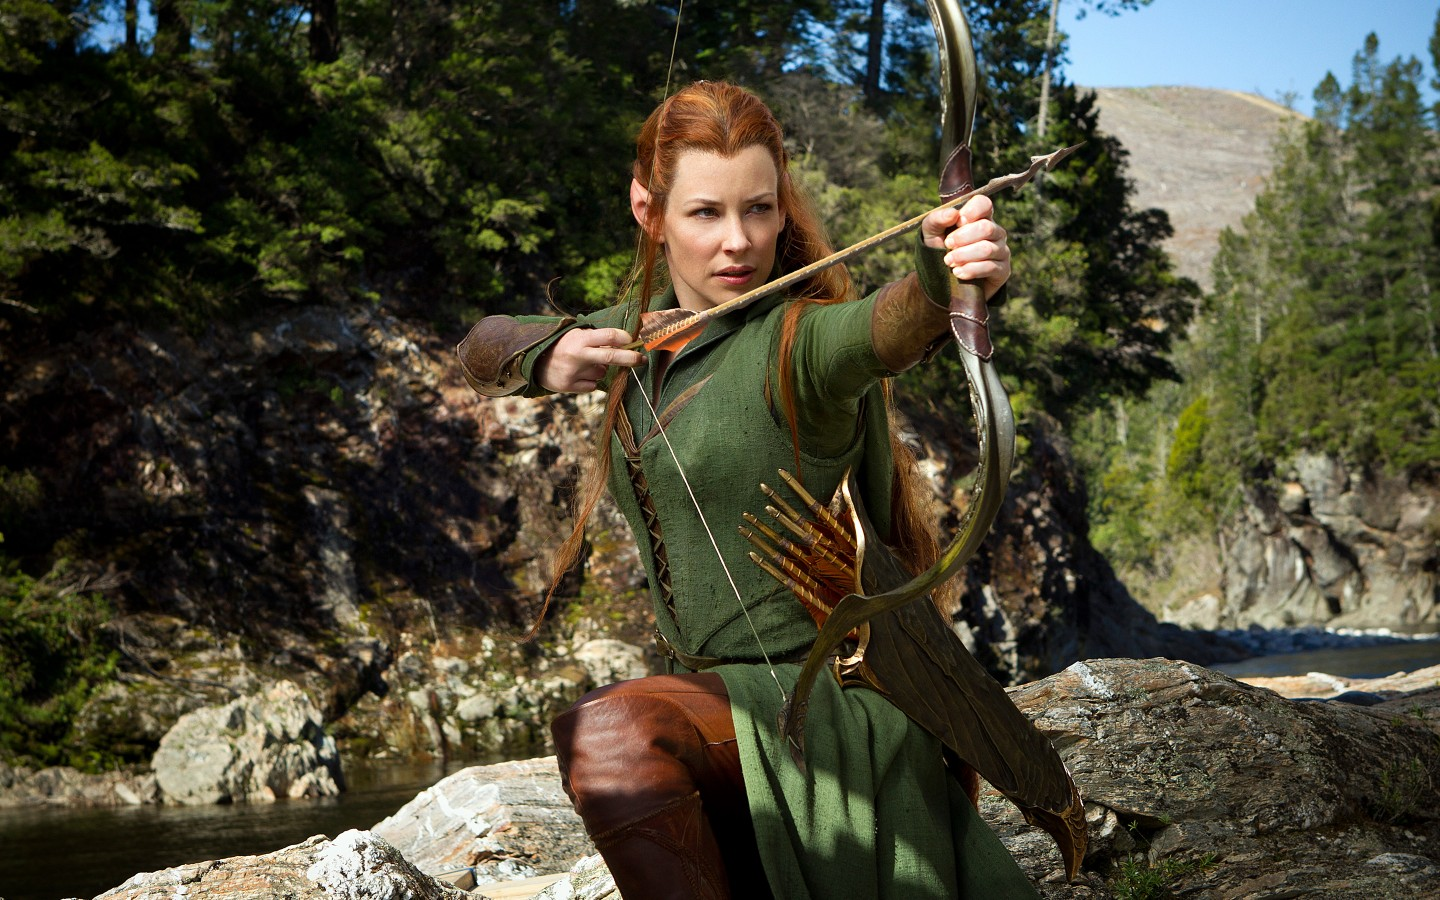 4k Uhd Wallpapers Of Cars Evangeline Lilly As Tauriel In Hobbit Wallpapers Hd